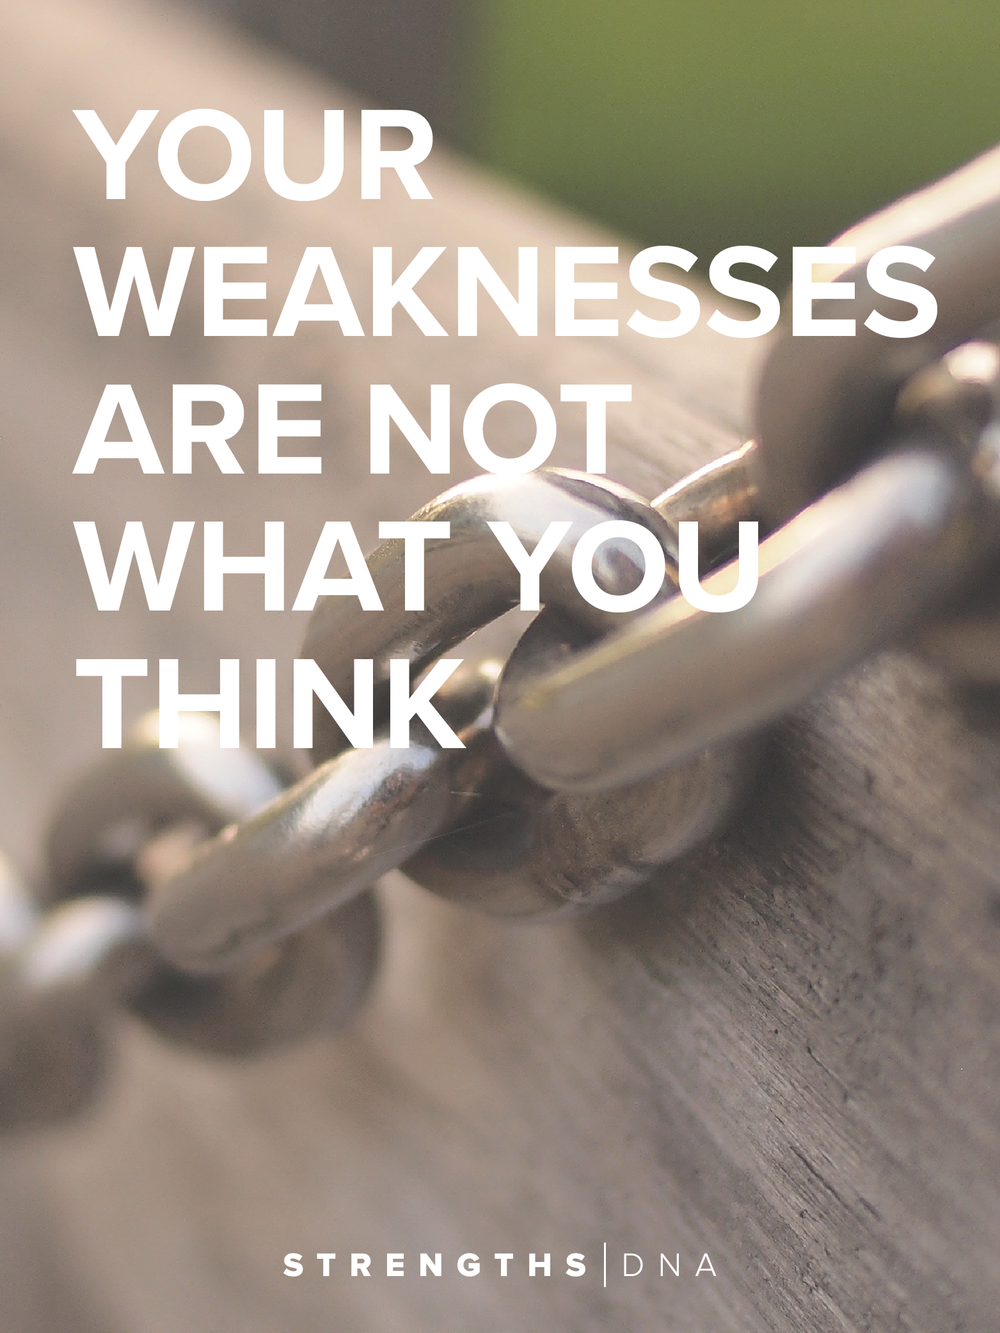 your weaknesses are not what you think strengths dna your weaknesses are not what you think com